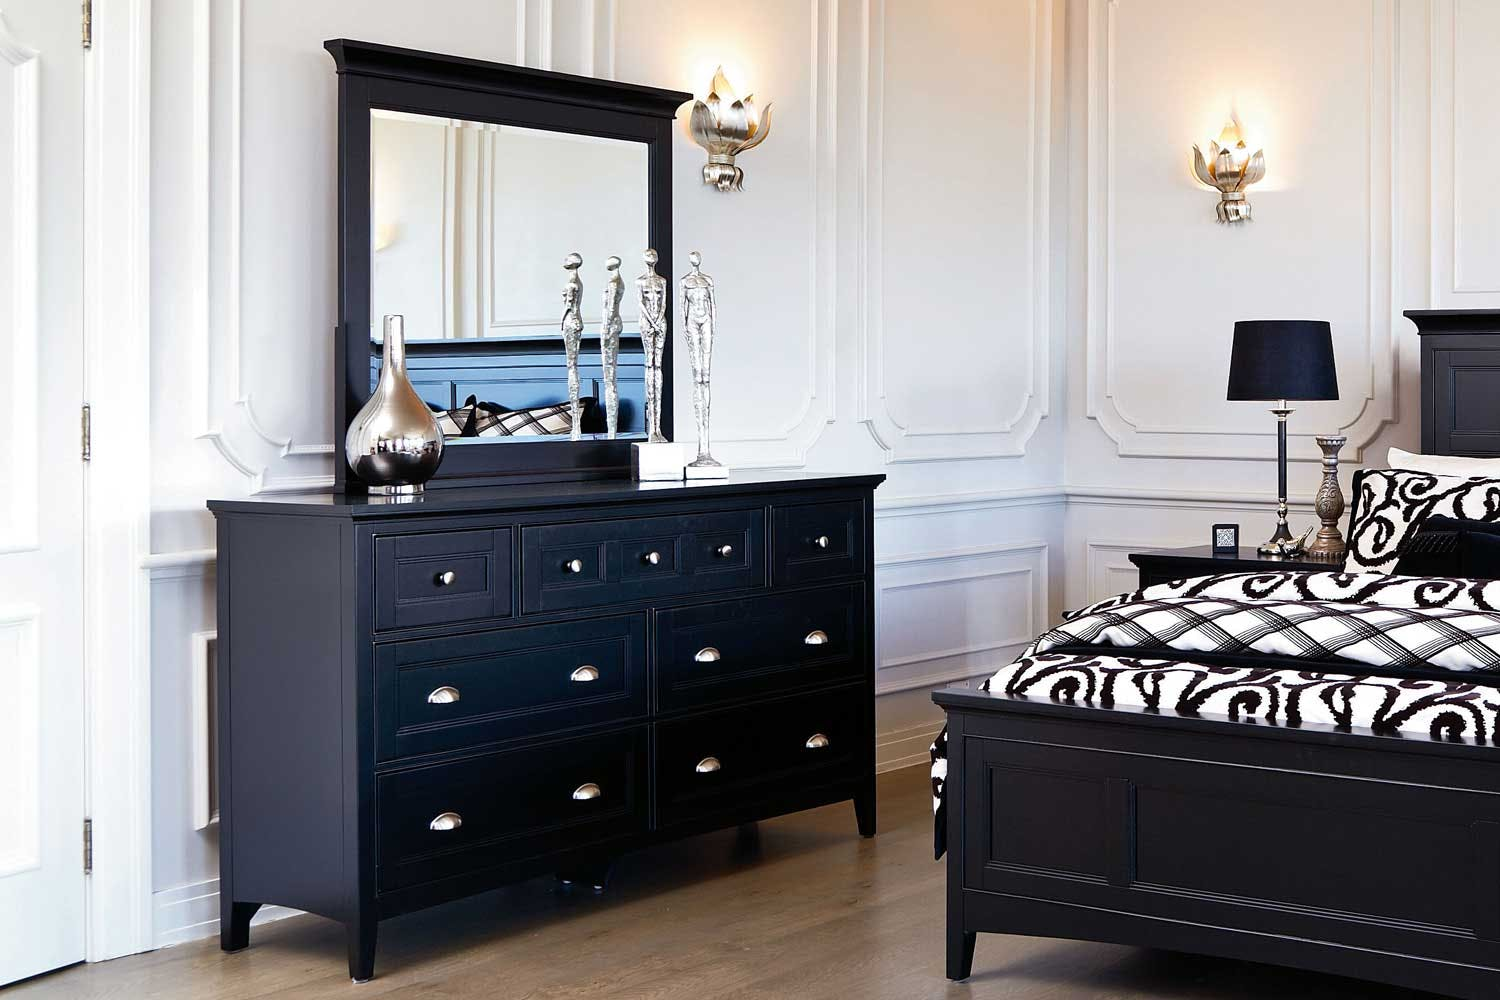 Southampton Dresser And Mirror By Garry Masters